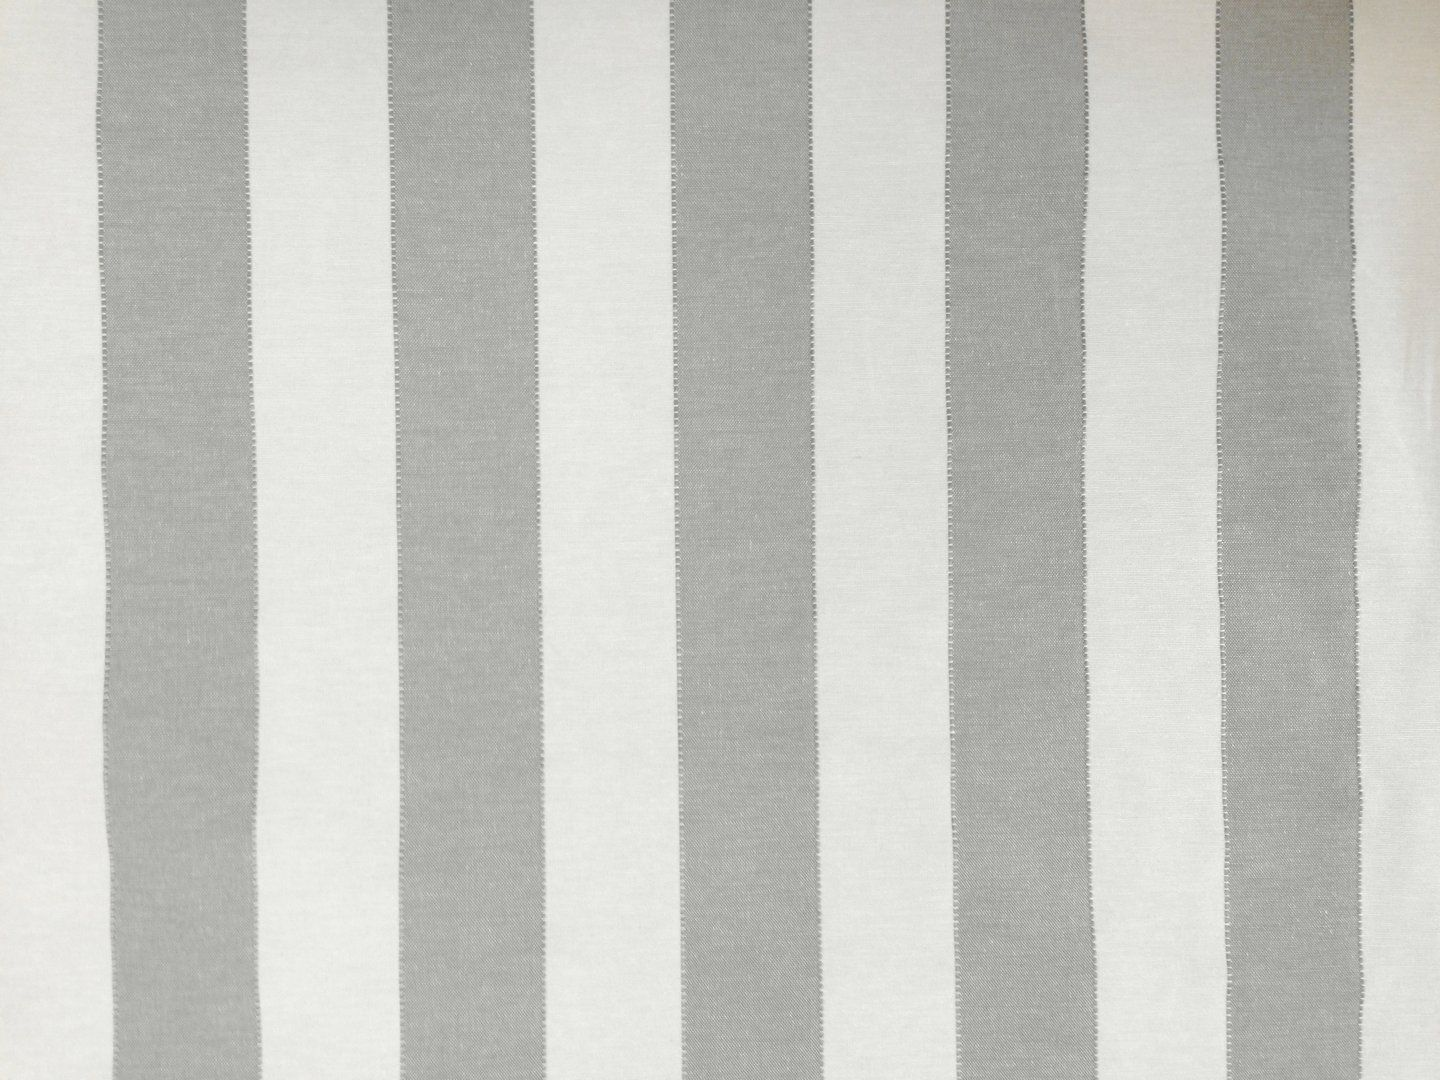 Ardleigh Grey Stripe Fabric | Textile Express | Buy Fabric Online ...